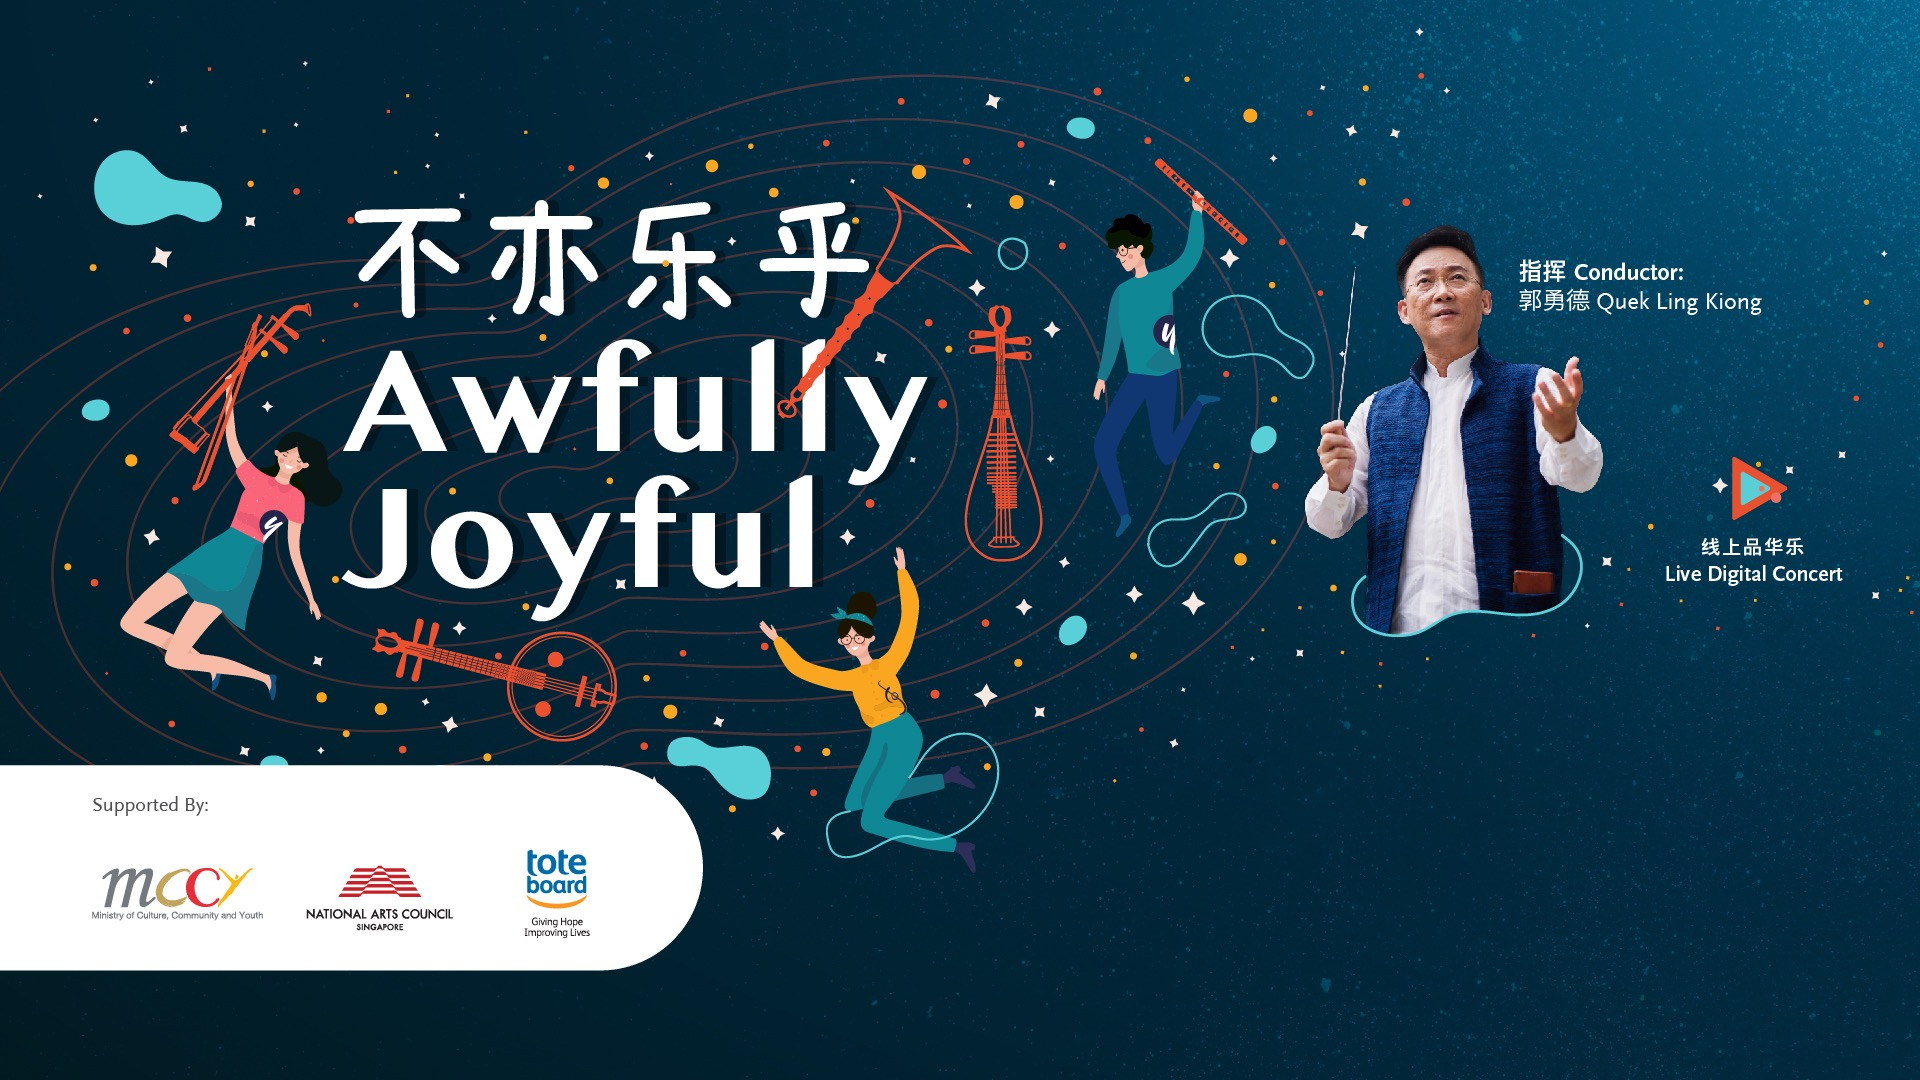 Website_banner_1920x1080_screen Singapore Chinese Orchestra 新加坡华乐团